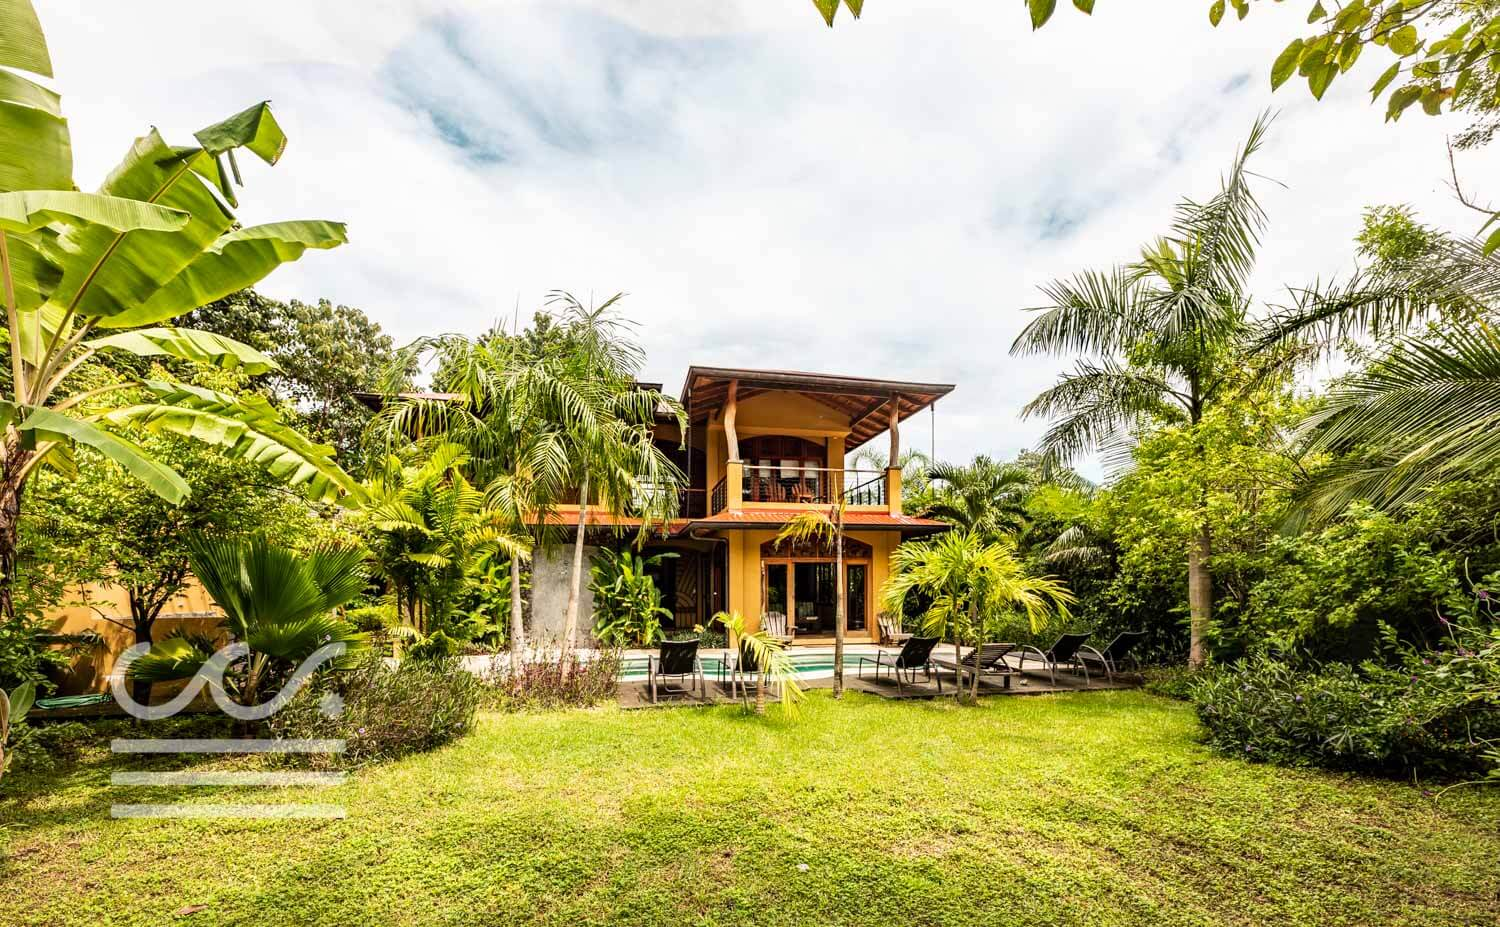 Endless-Summer-Wanderlust-Realty-Real-Estate-Rentals-Nosara-Costa-Rica-8.jpg